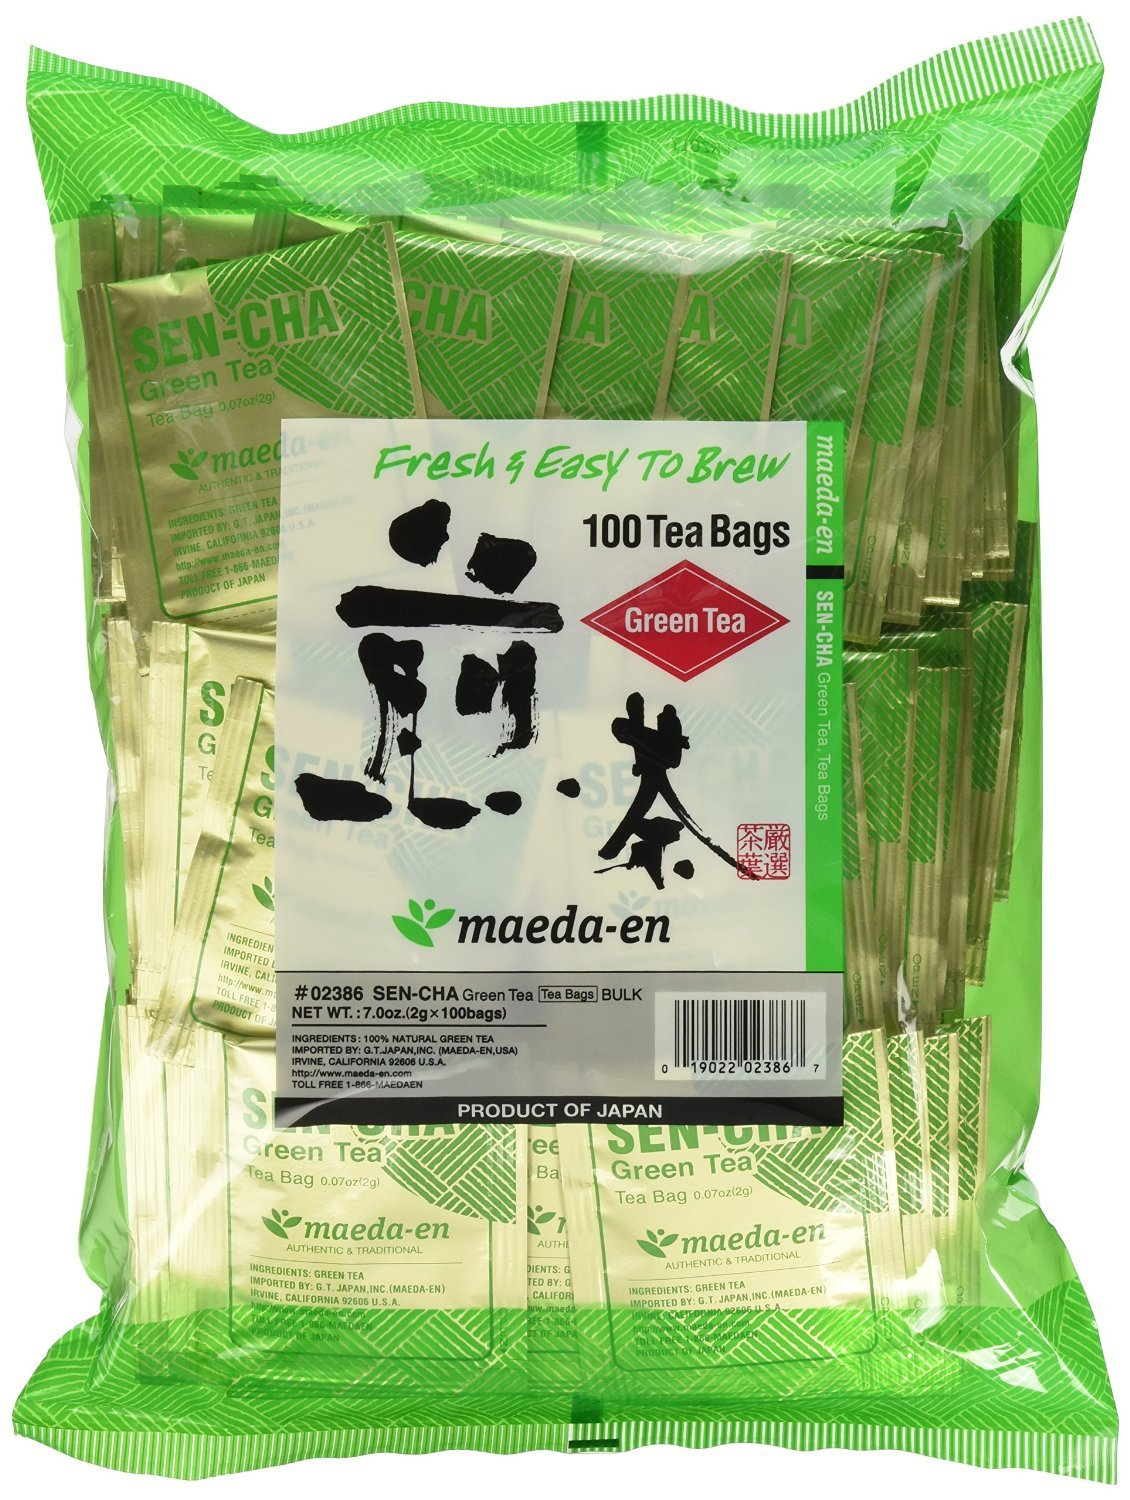 Authentic Maeda-en Japanese Sencha Green Tea - 100 Foil-Wrapped Tea Bags (Pack of 2)